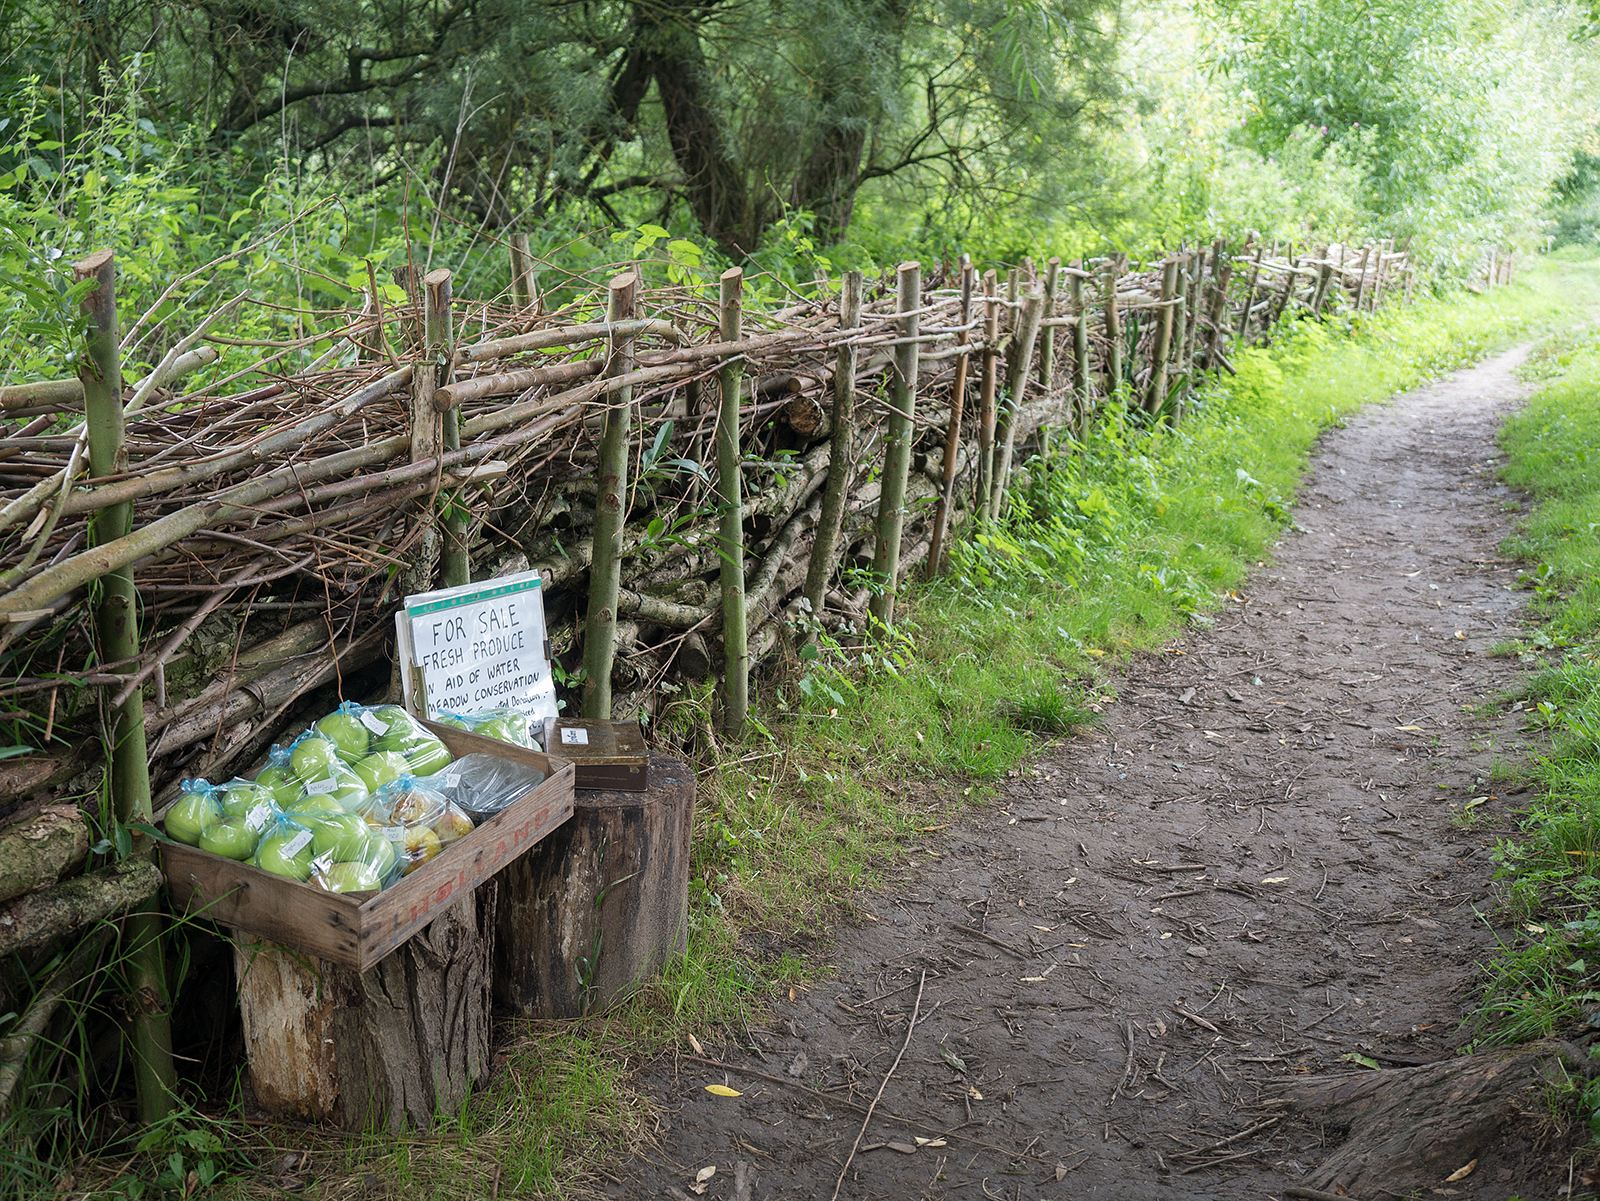 Food for sale on the Thames path